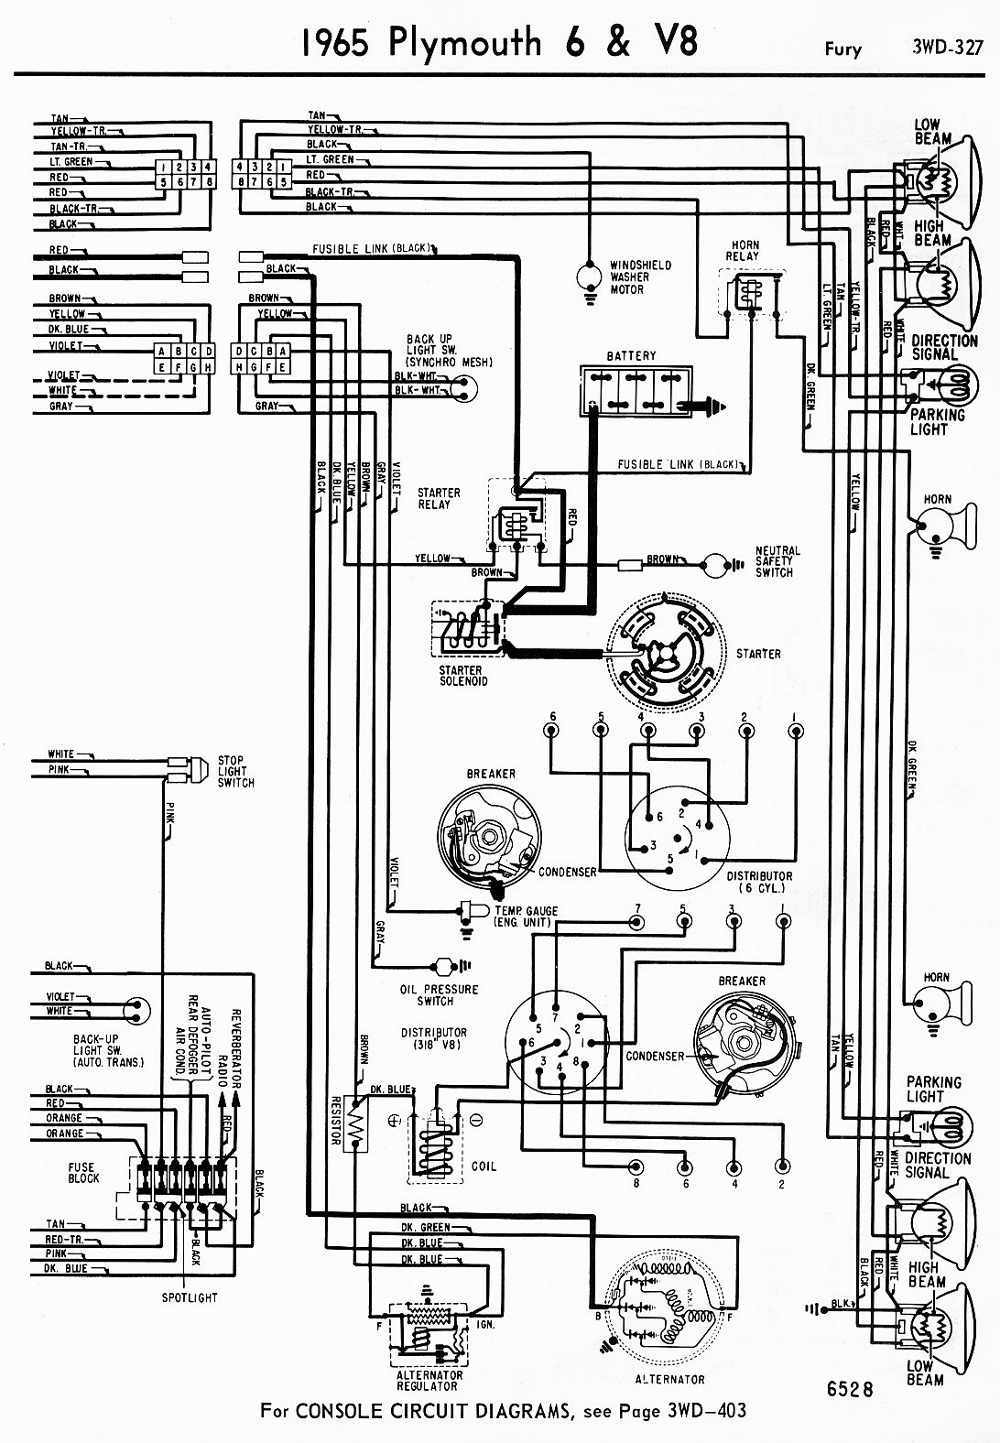 40 Ford Maverick Wiring Diagram   campaign grouper timetab ...